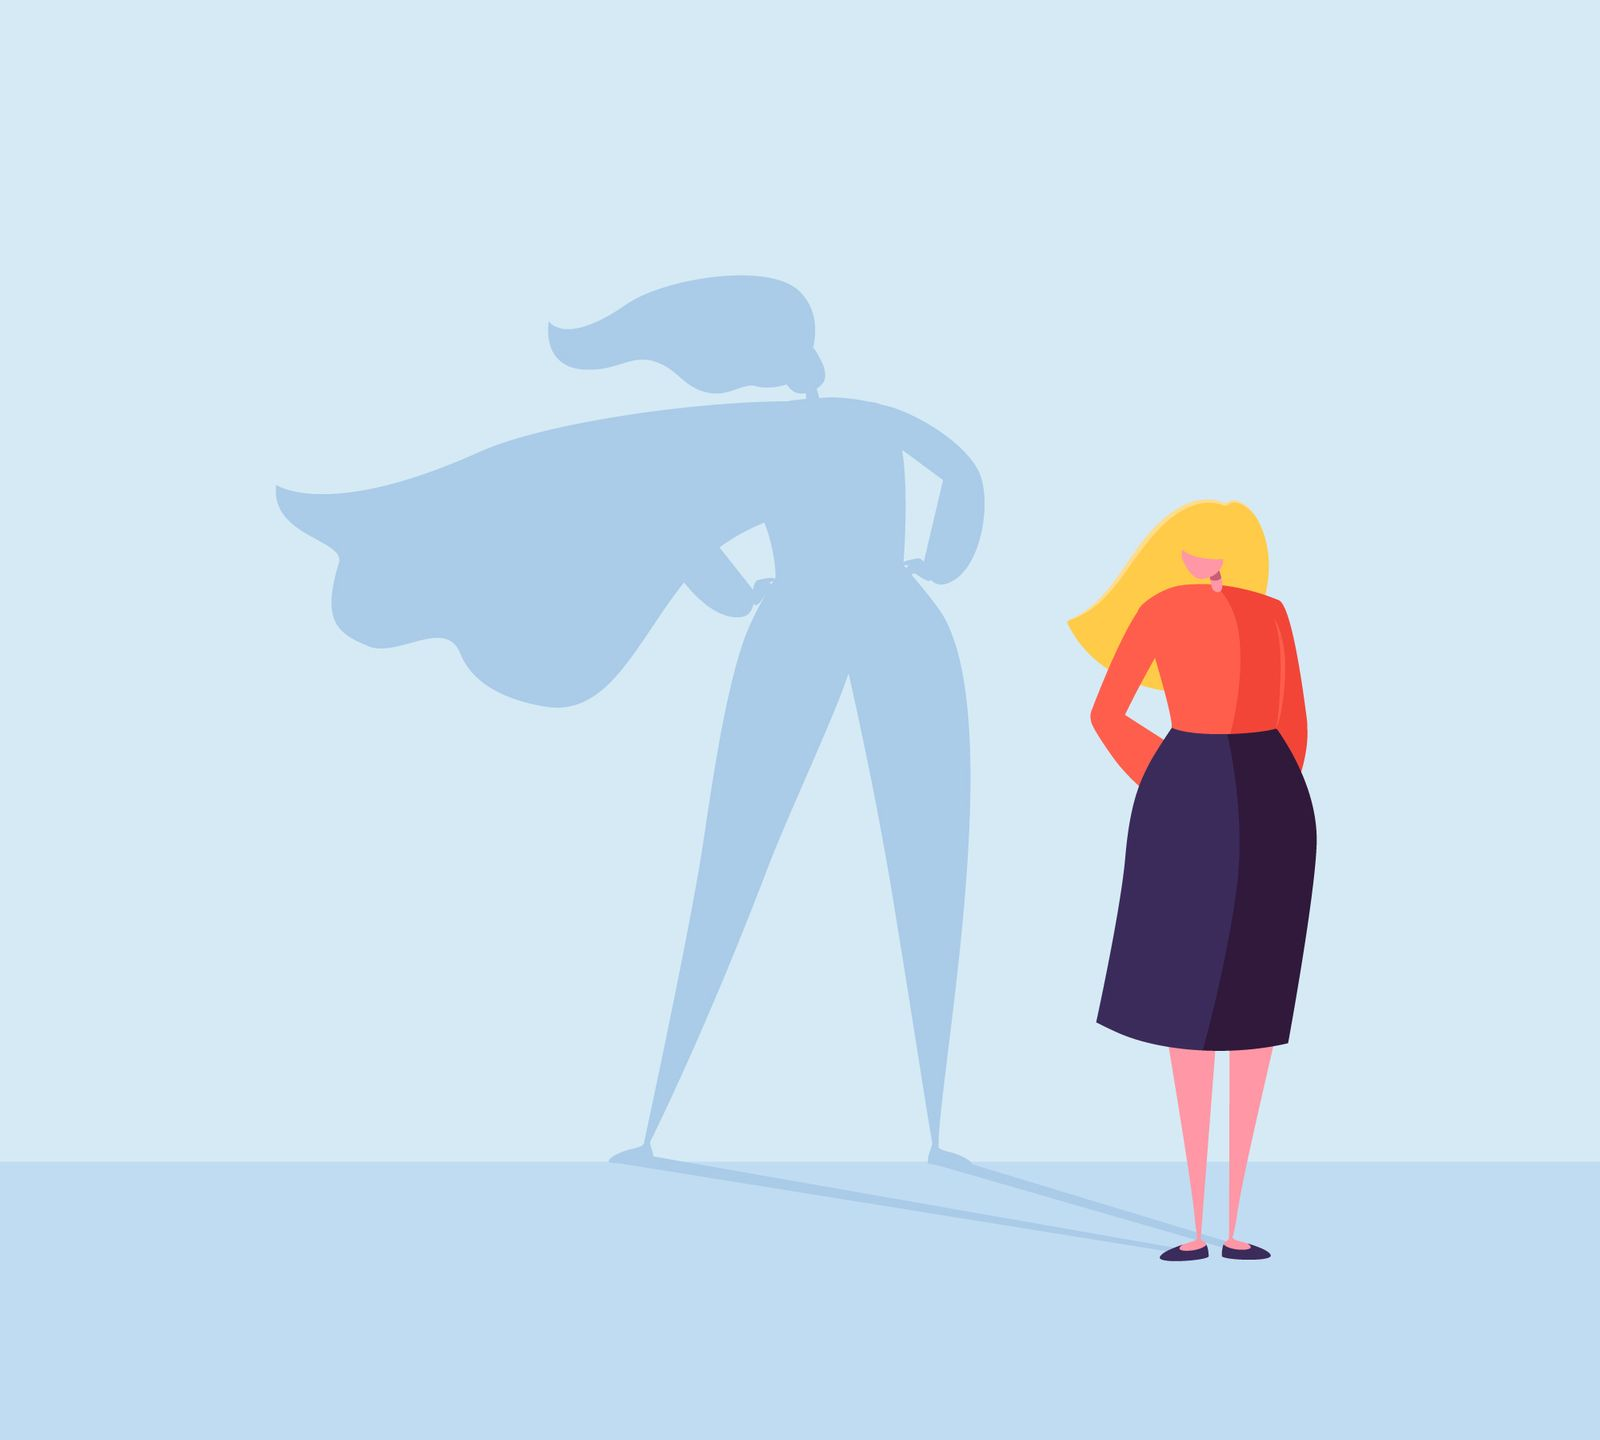 Business Woman with a Super Hero Shadow. Female Character with Cape Silhouette. Businesswoman Leadership Motivation Concept. Vector illustration